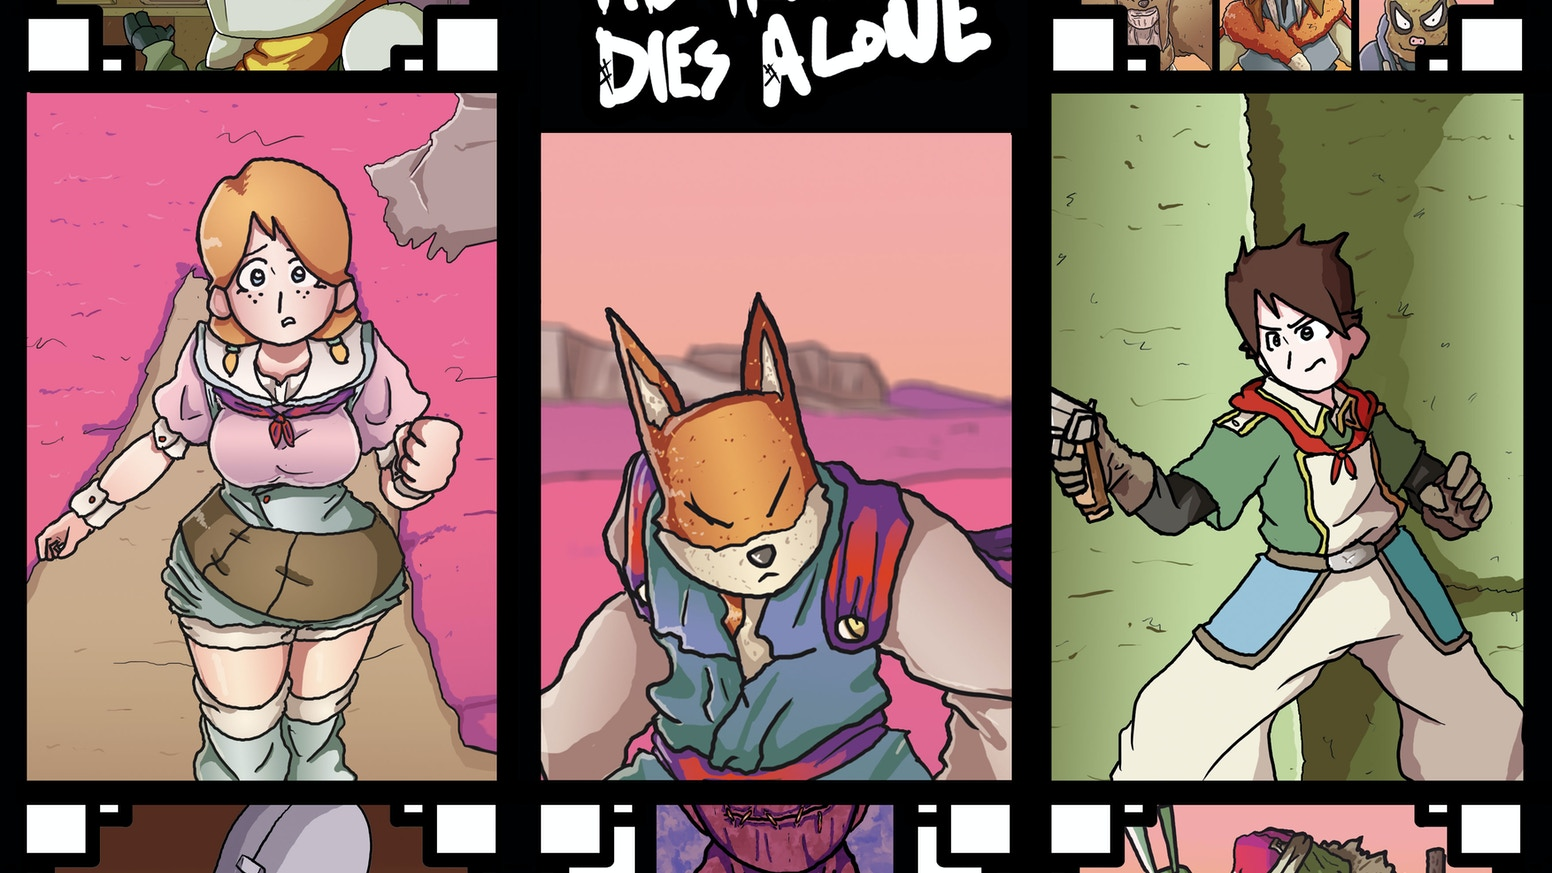 Collects the first story arc in the ongoing comic series The hero dies alone